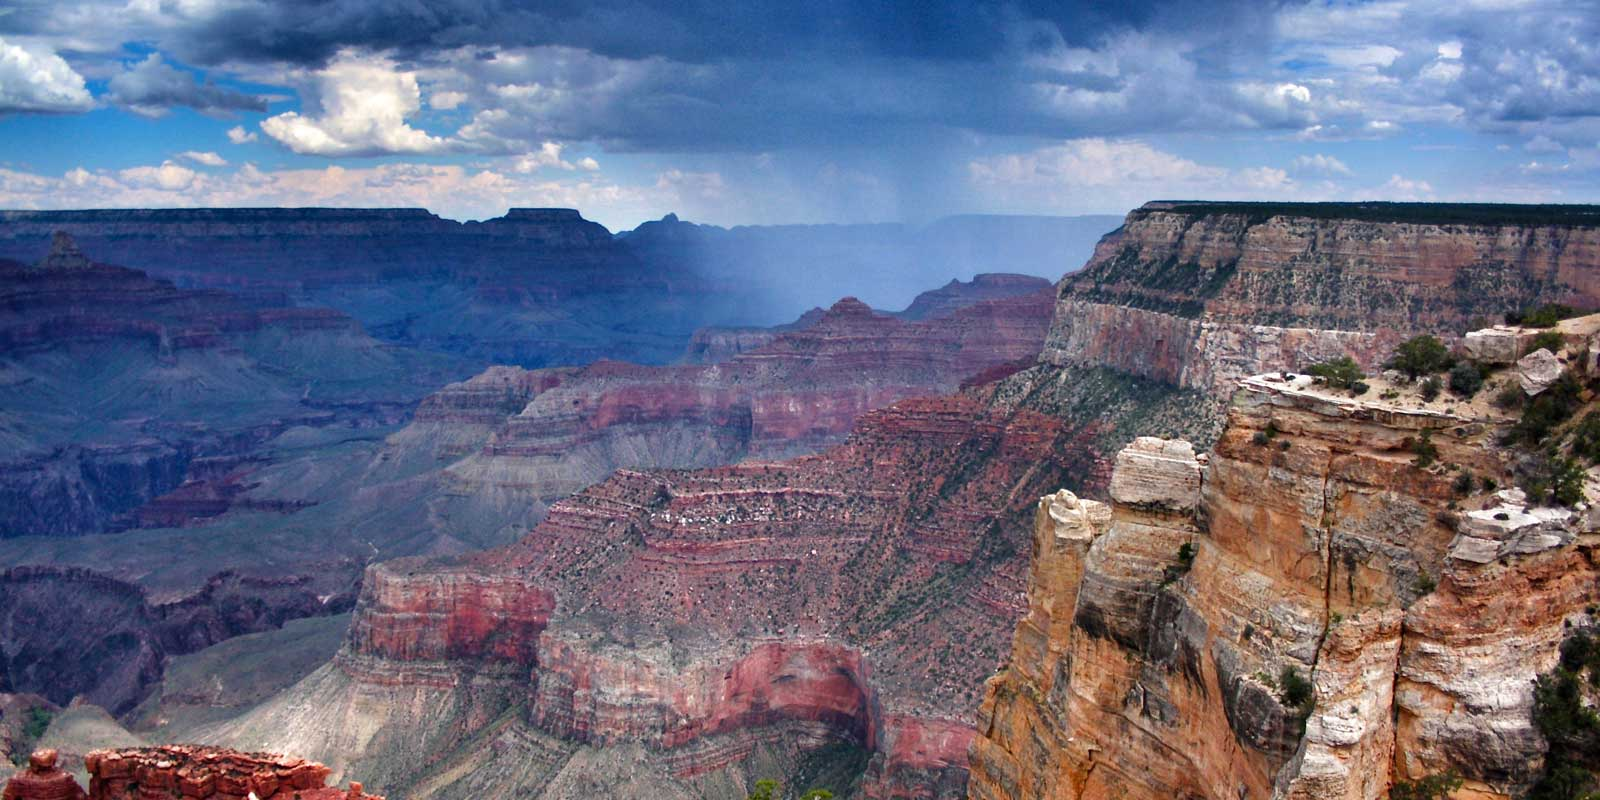 Close up of the Grand Canyon with dark and cloudy skies